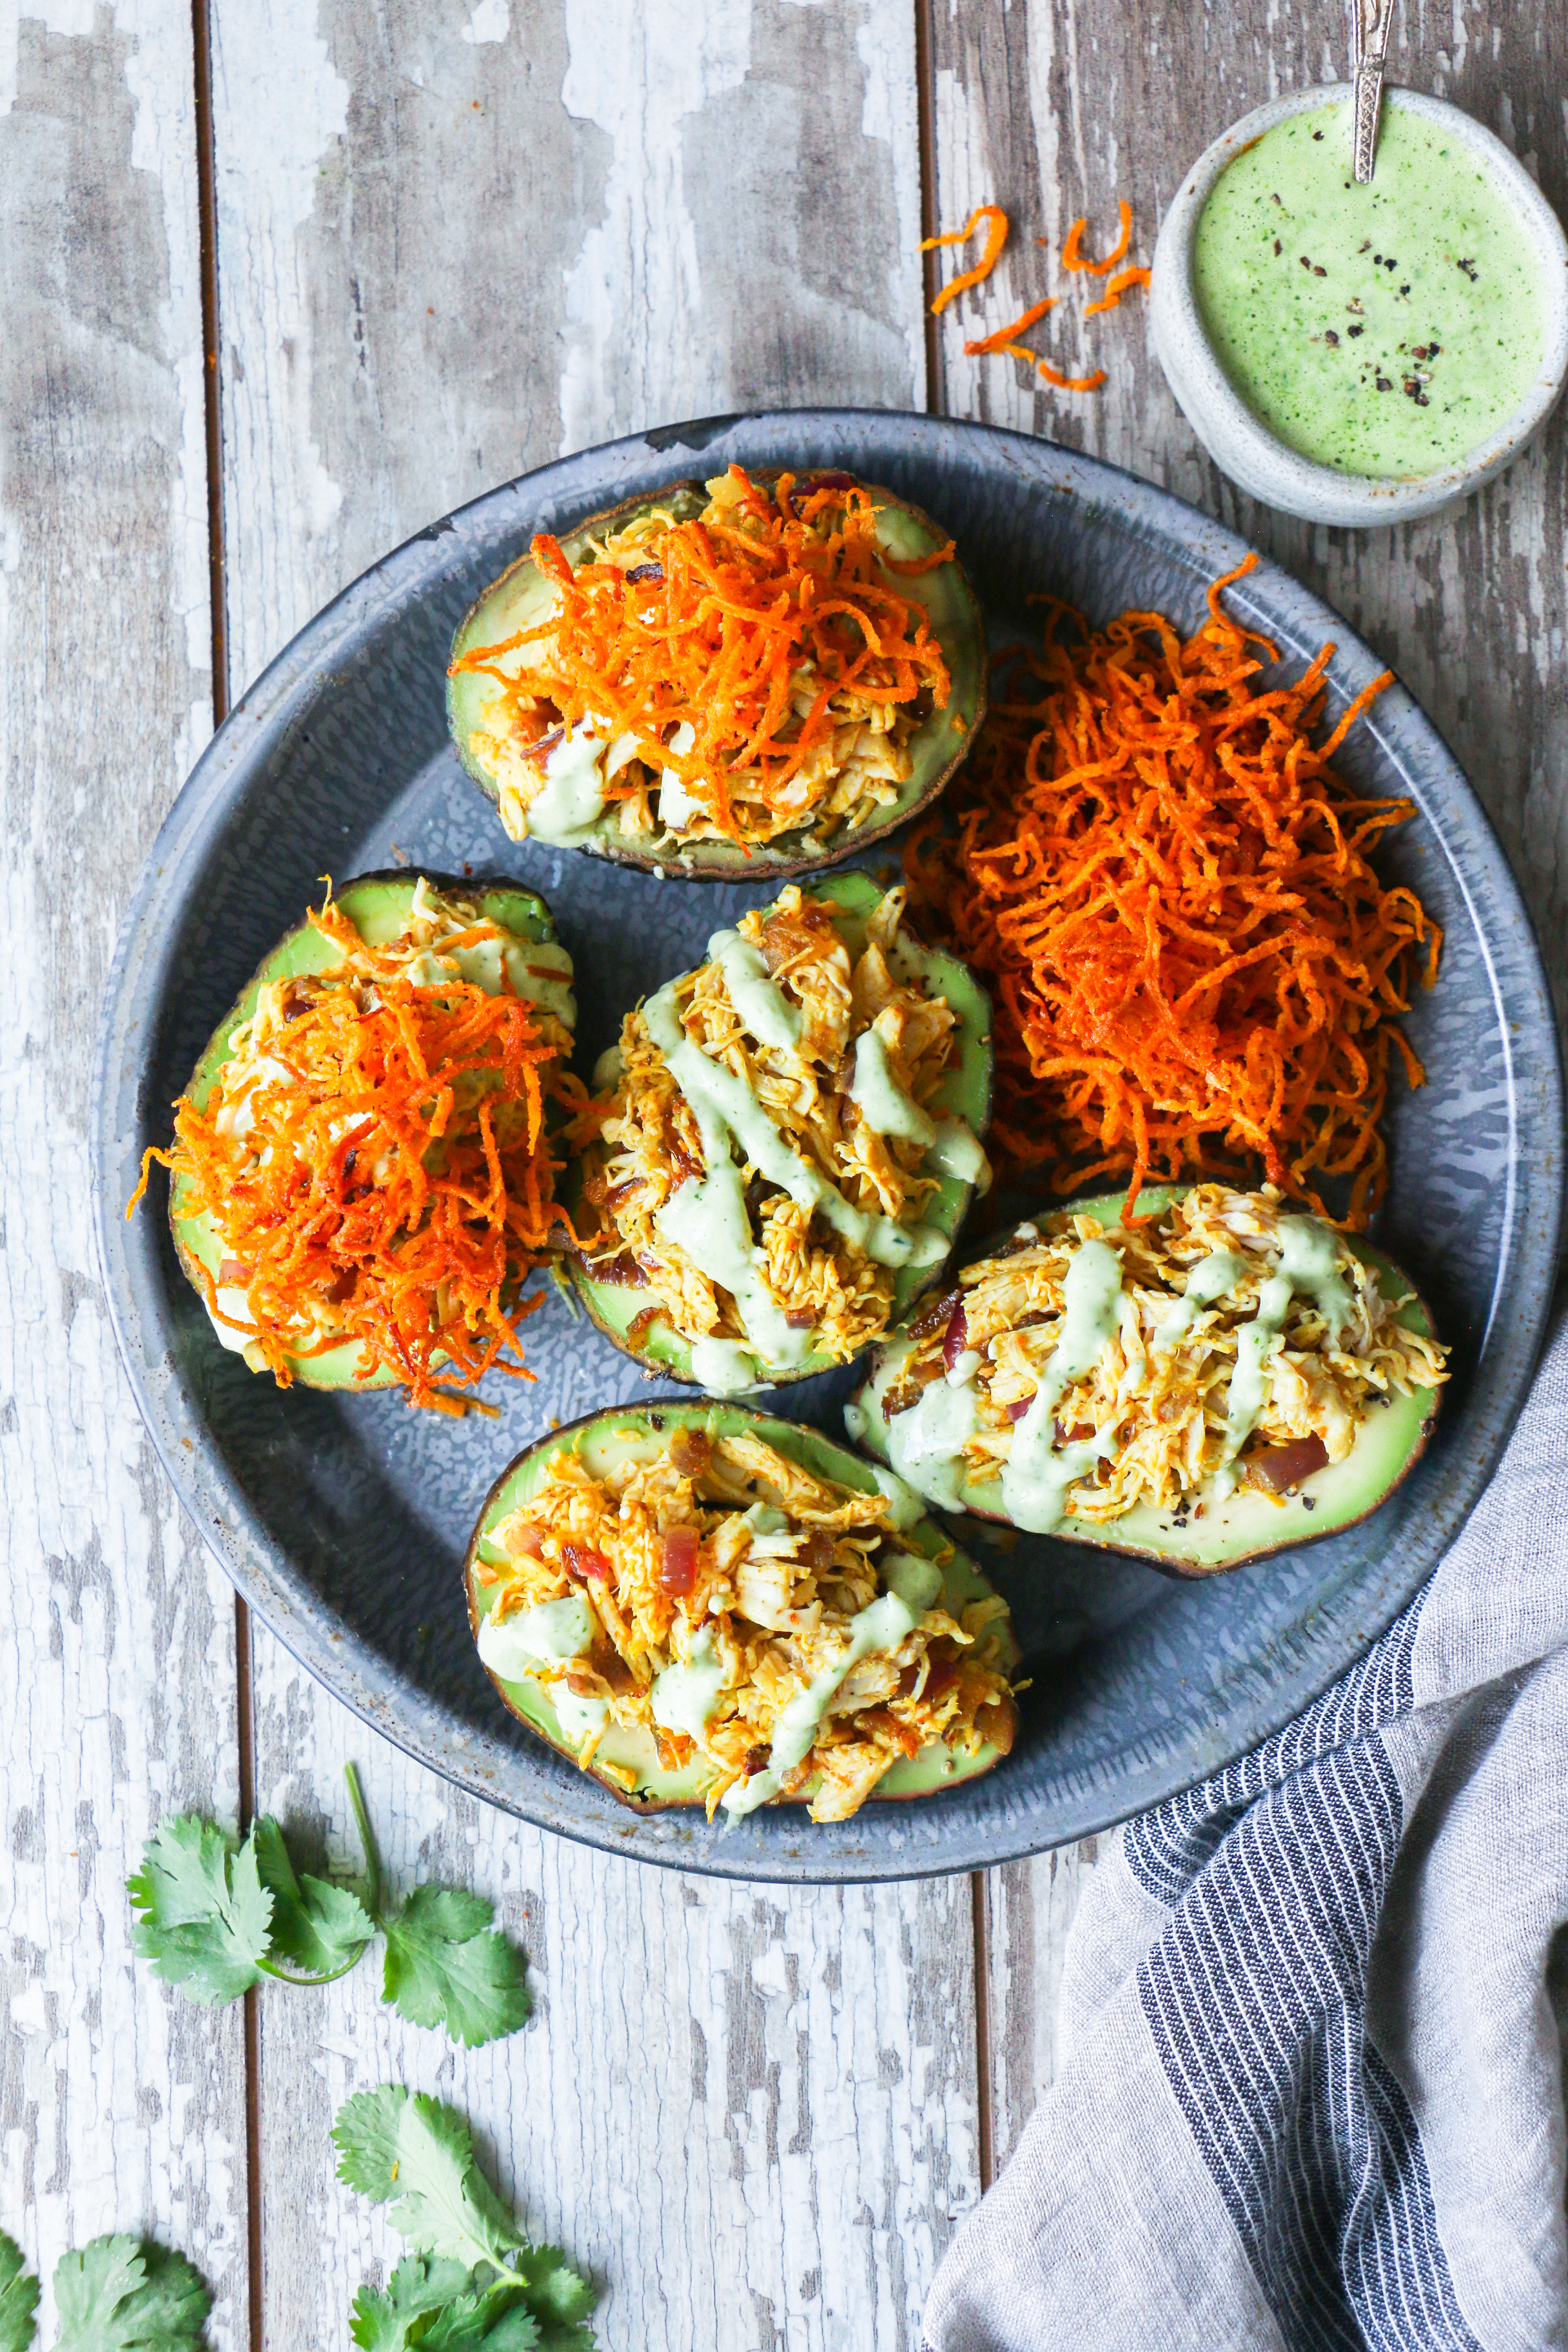 Curry Chicken Salad Avocado Boats with Cilantro cream - Carb free and Healthy foodfashionparty  #avocadoboats